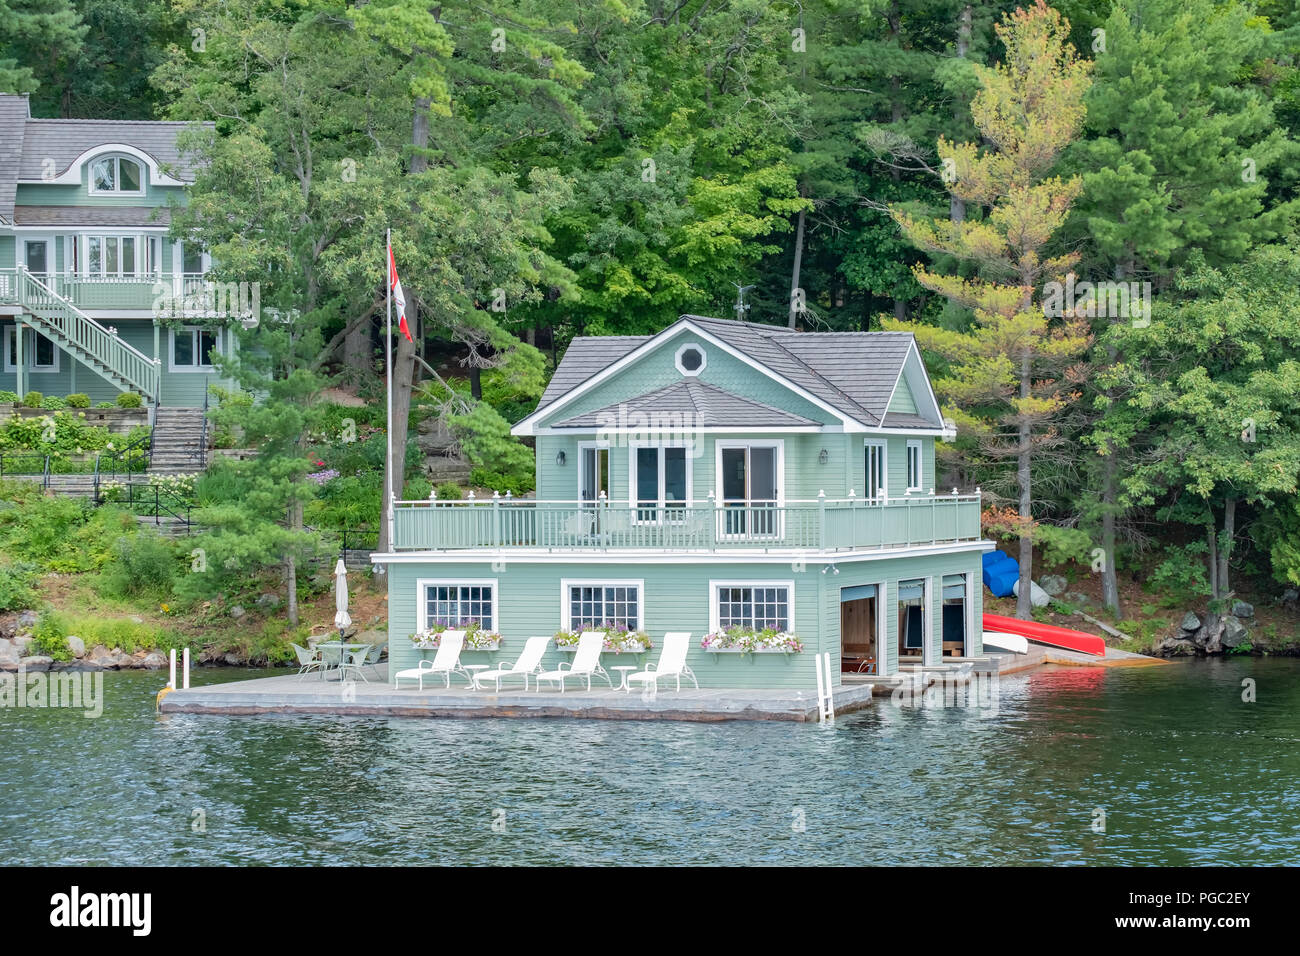 Boathouse on the waters of Lake Muskoka in Ontario Canada, a popular cottage destination. - Stock Image